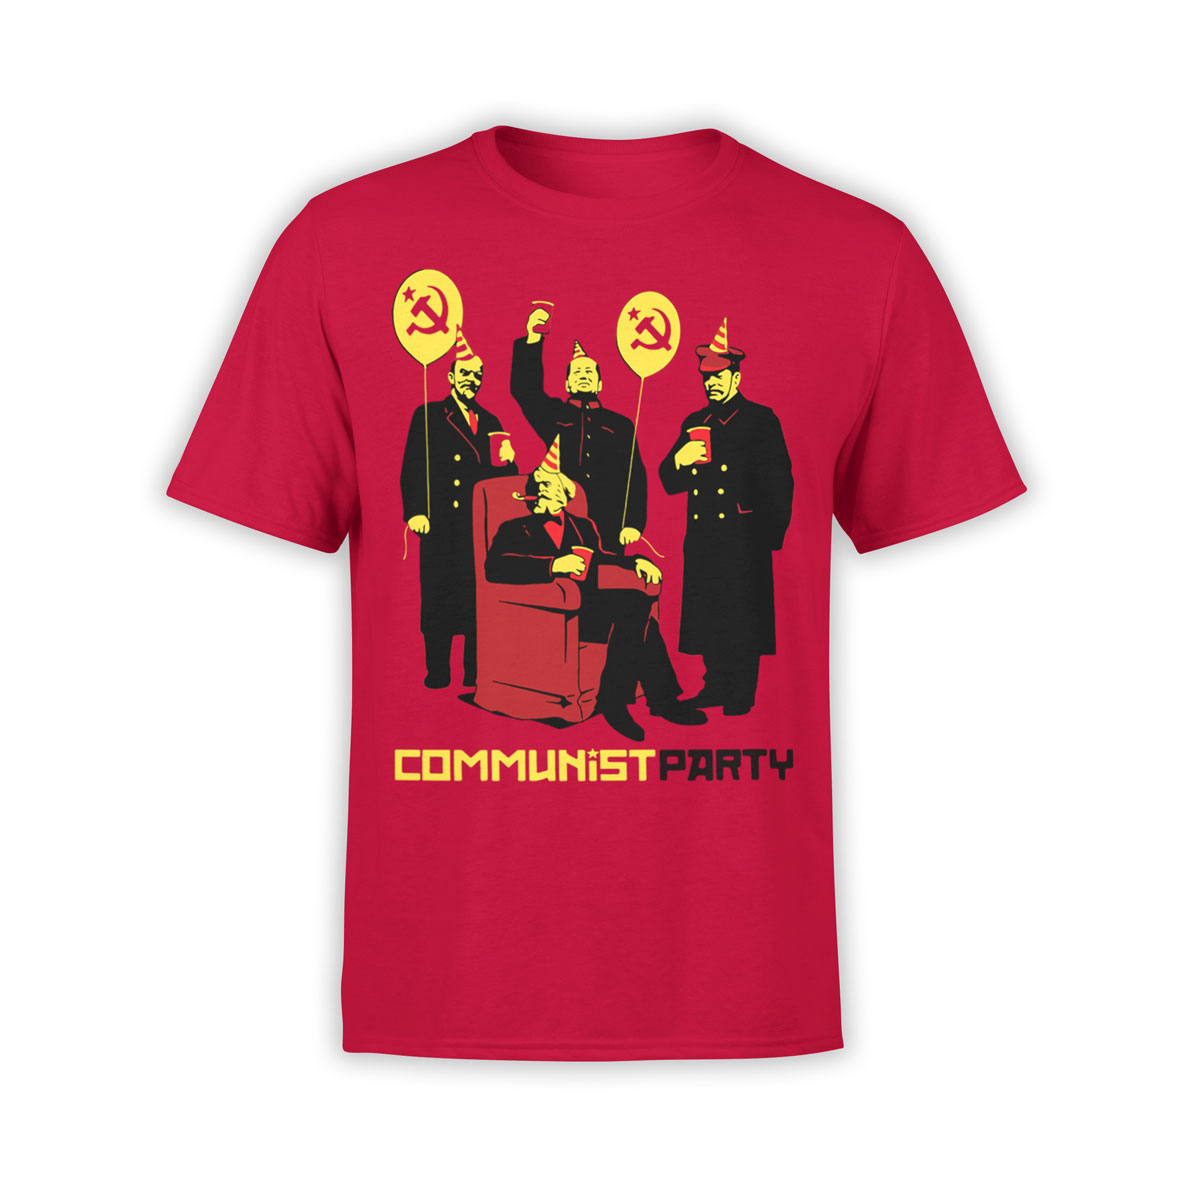 Funny t shirts communist party unisex t shirt 100 for Comic t shirts online